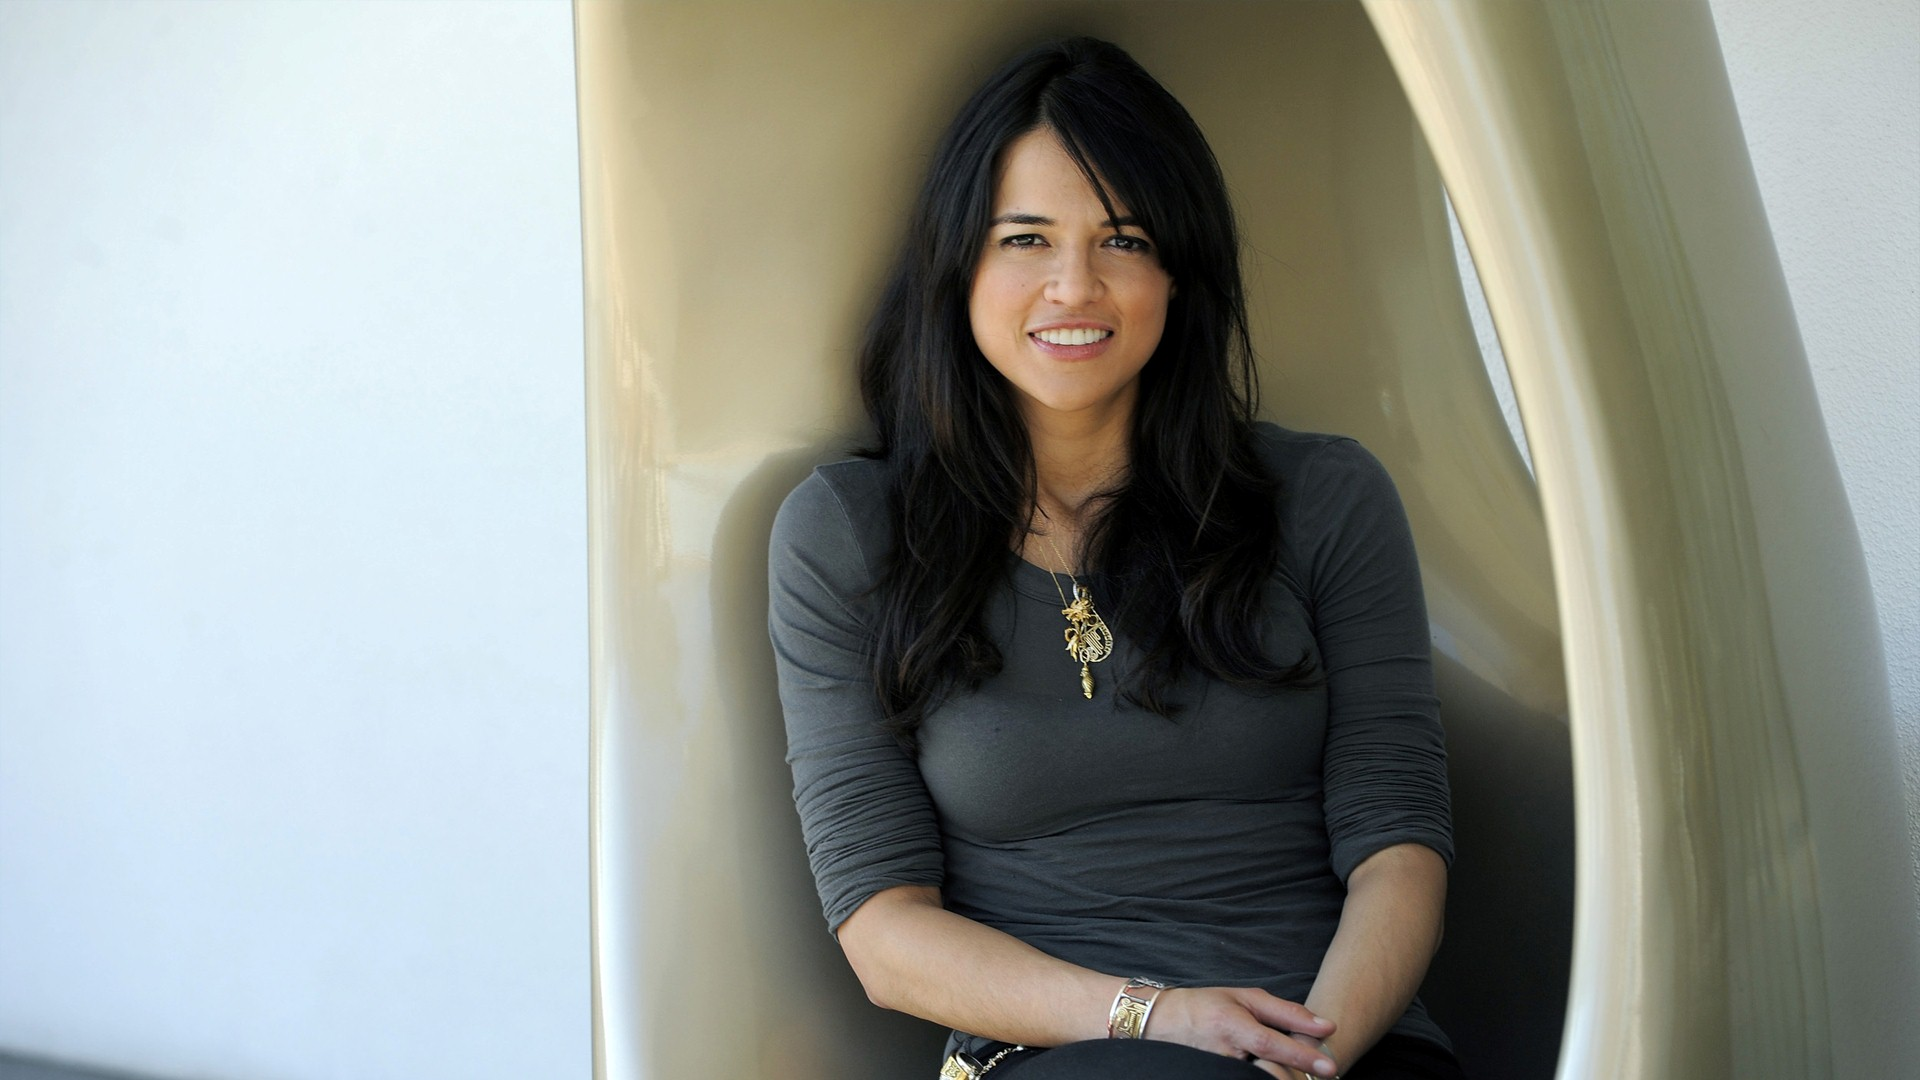 1920x1080 - Michelle Rodriguez Wallpapers 9